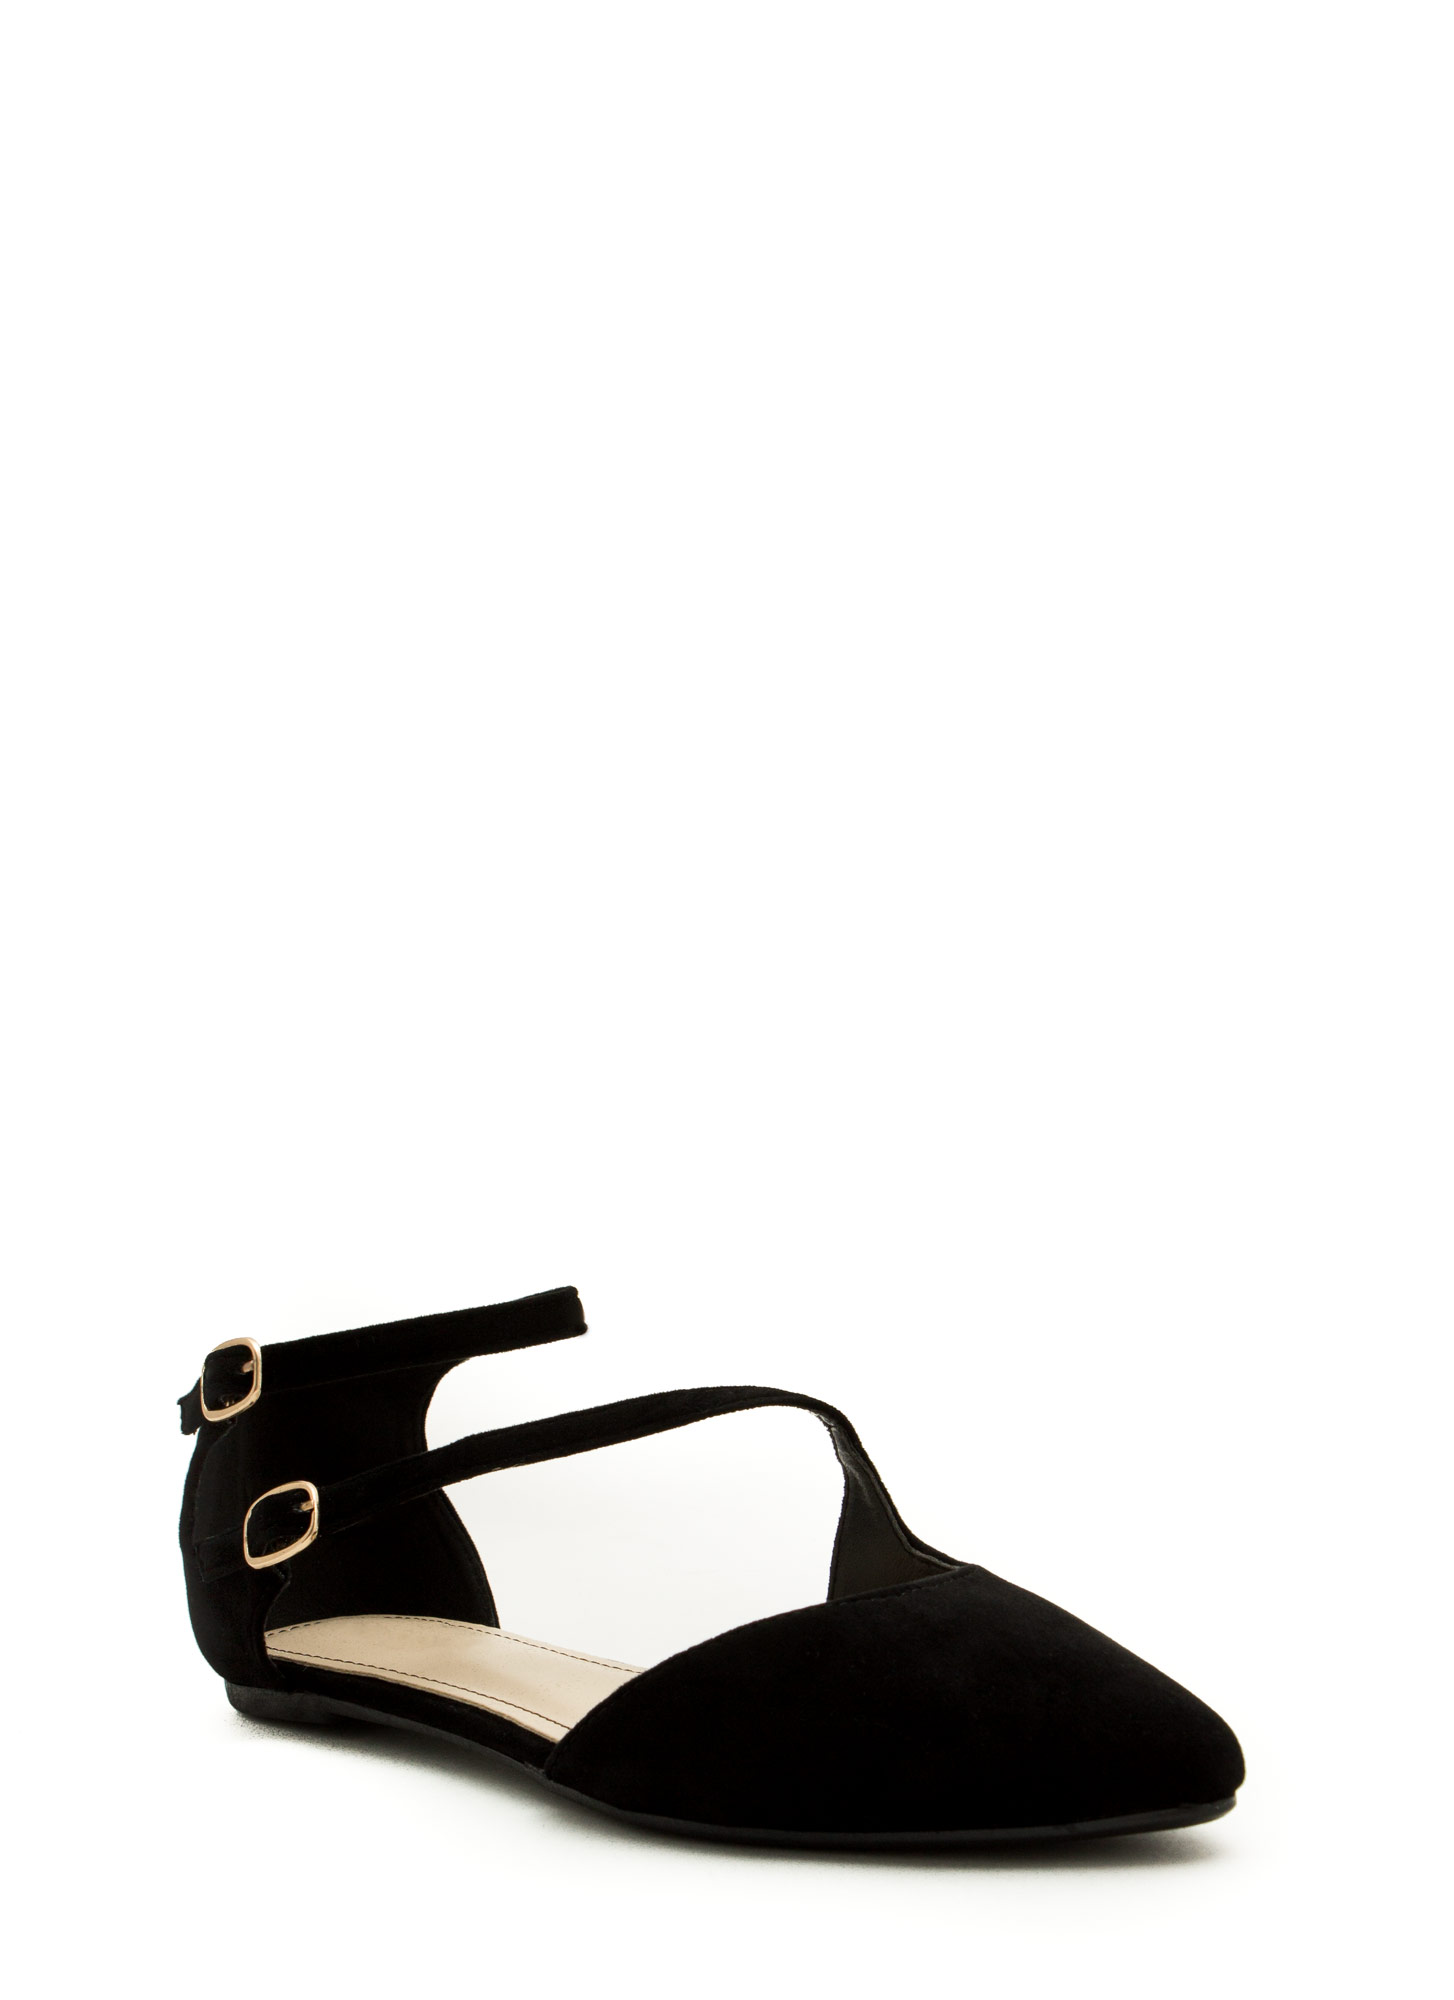 Double Buckle Cross Strap Flats BLACK